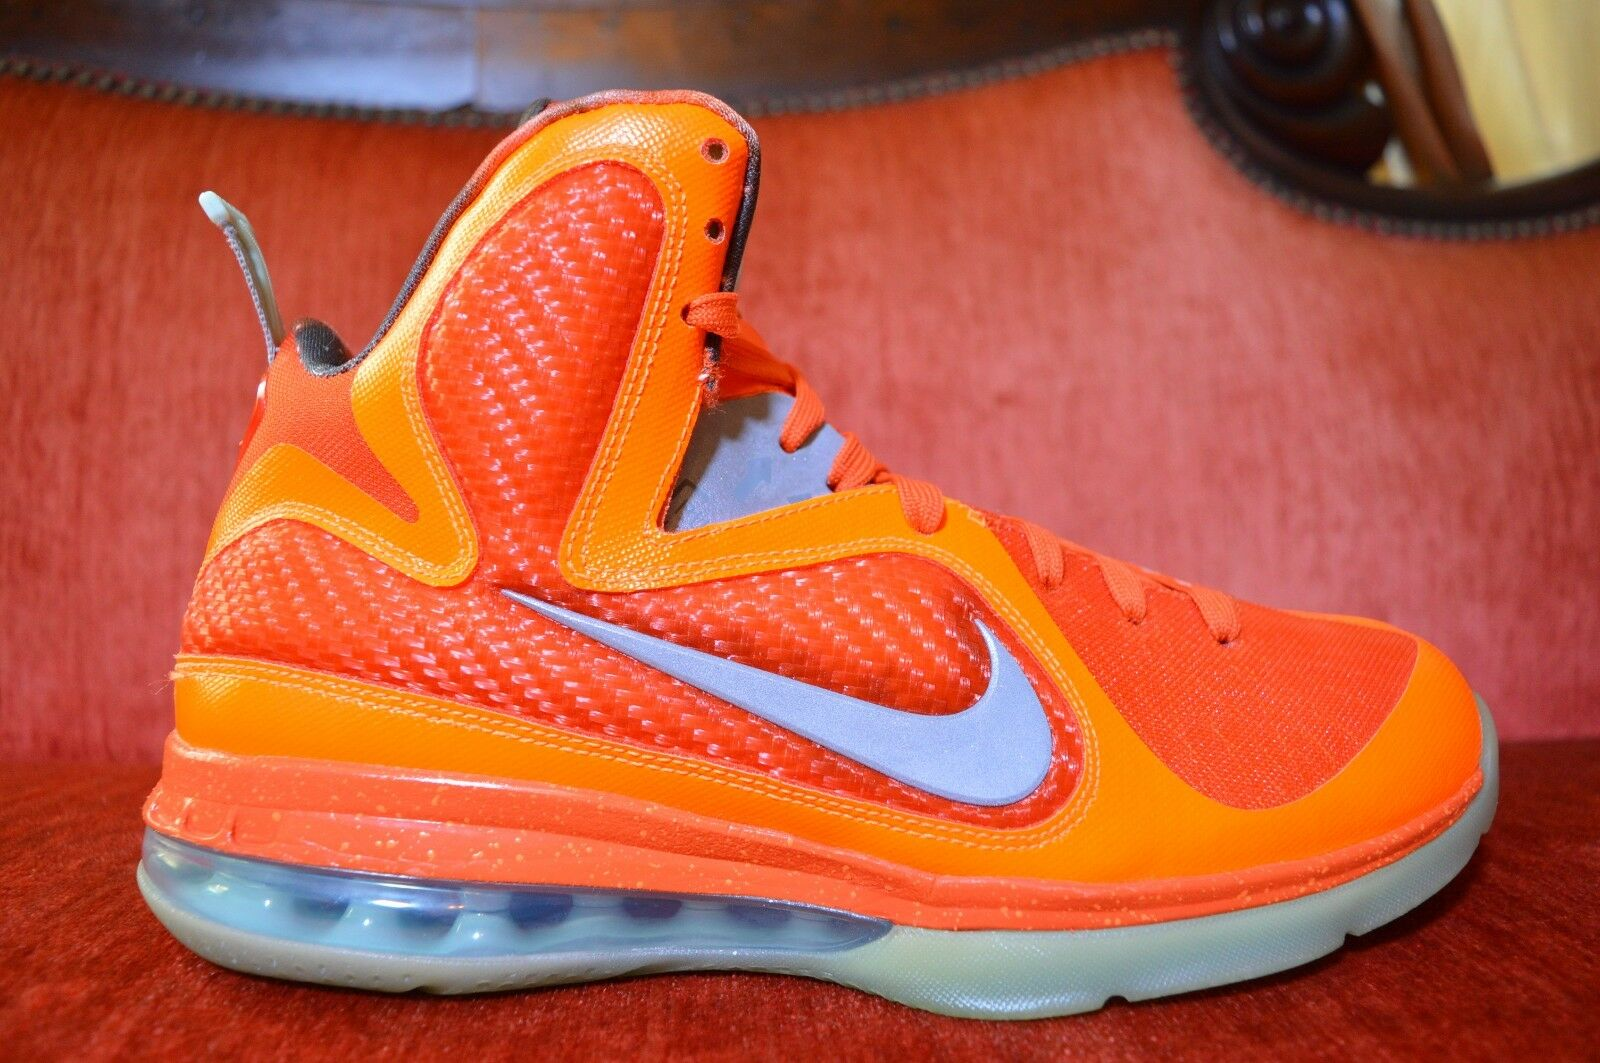 TRIED ON Nike Air Max LEBRON IX 9 AS GALAXY ALL STAR BIG BANG orange 520811-800